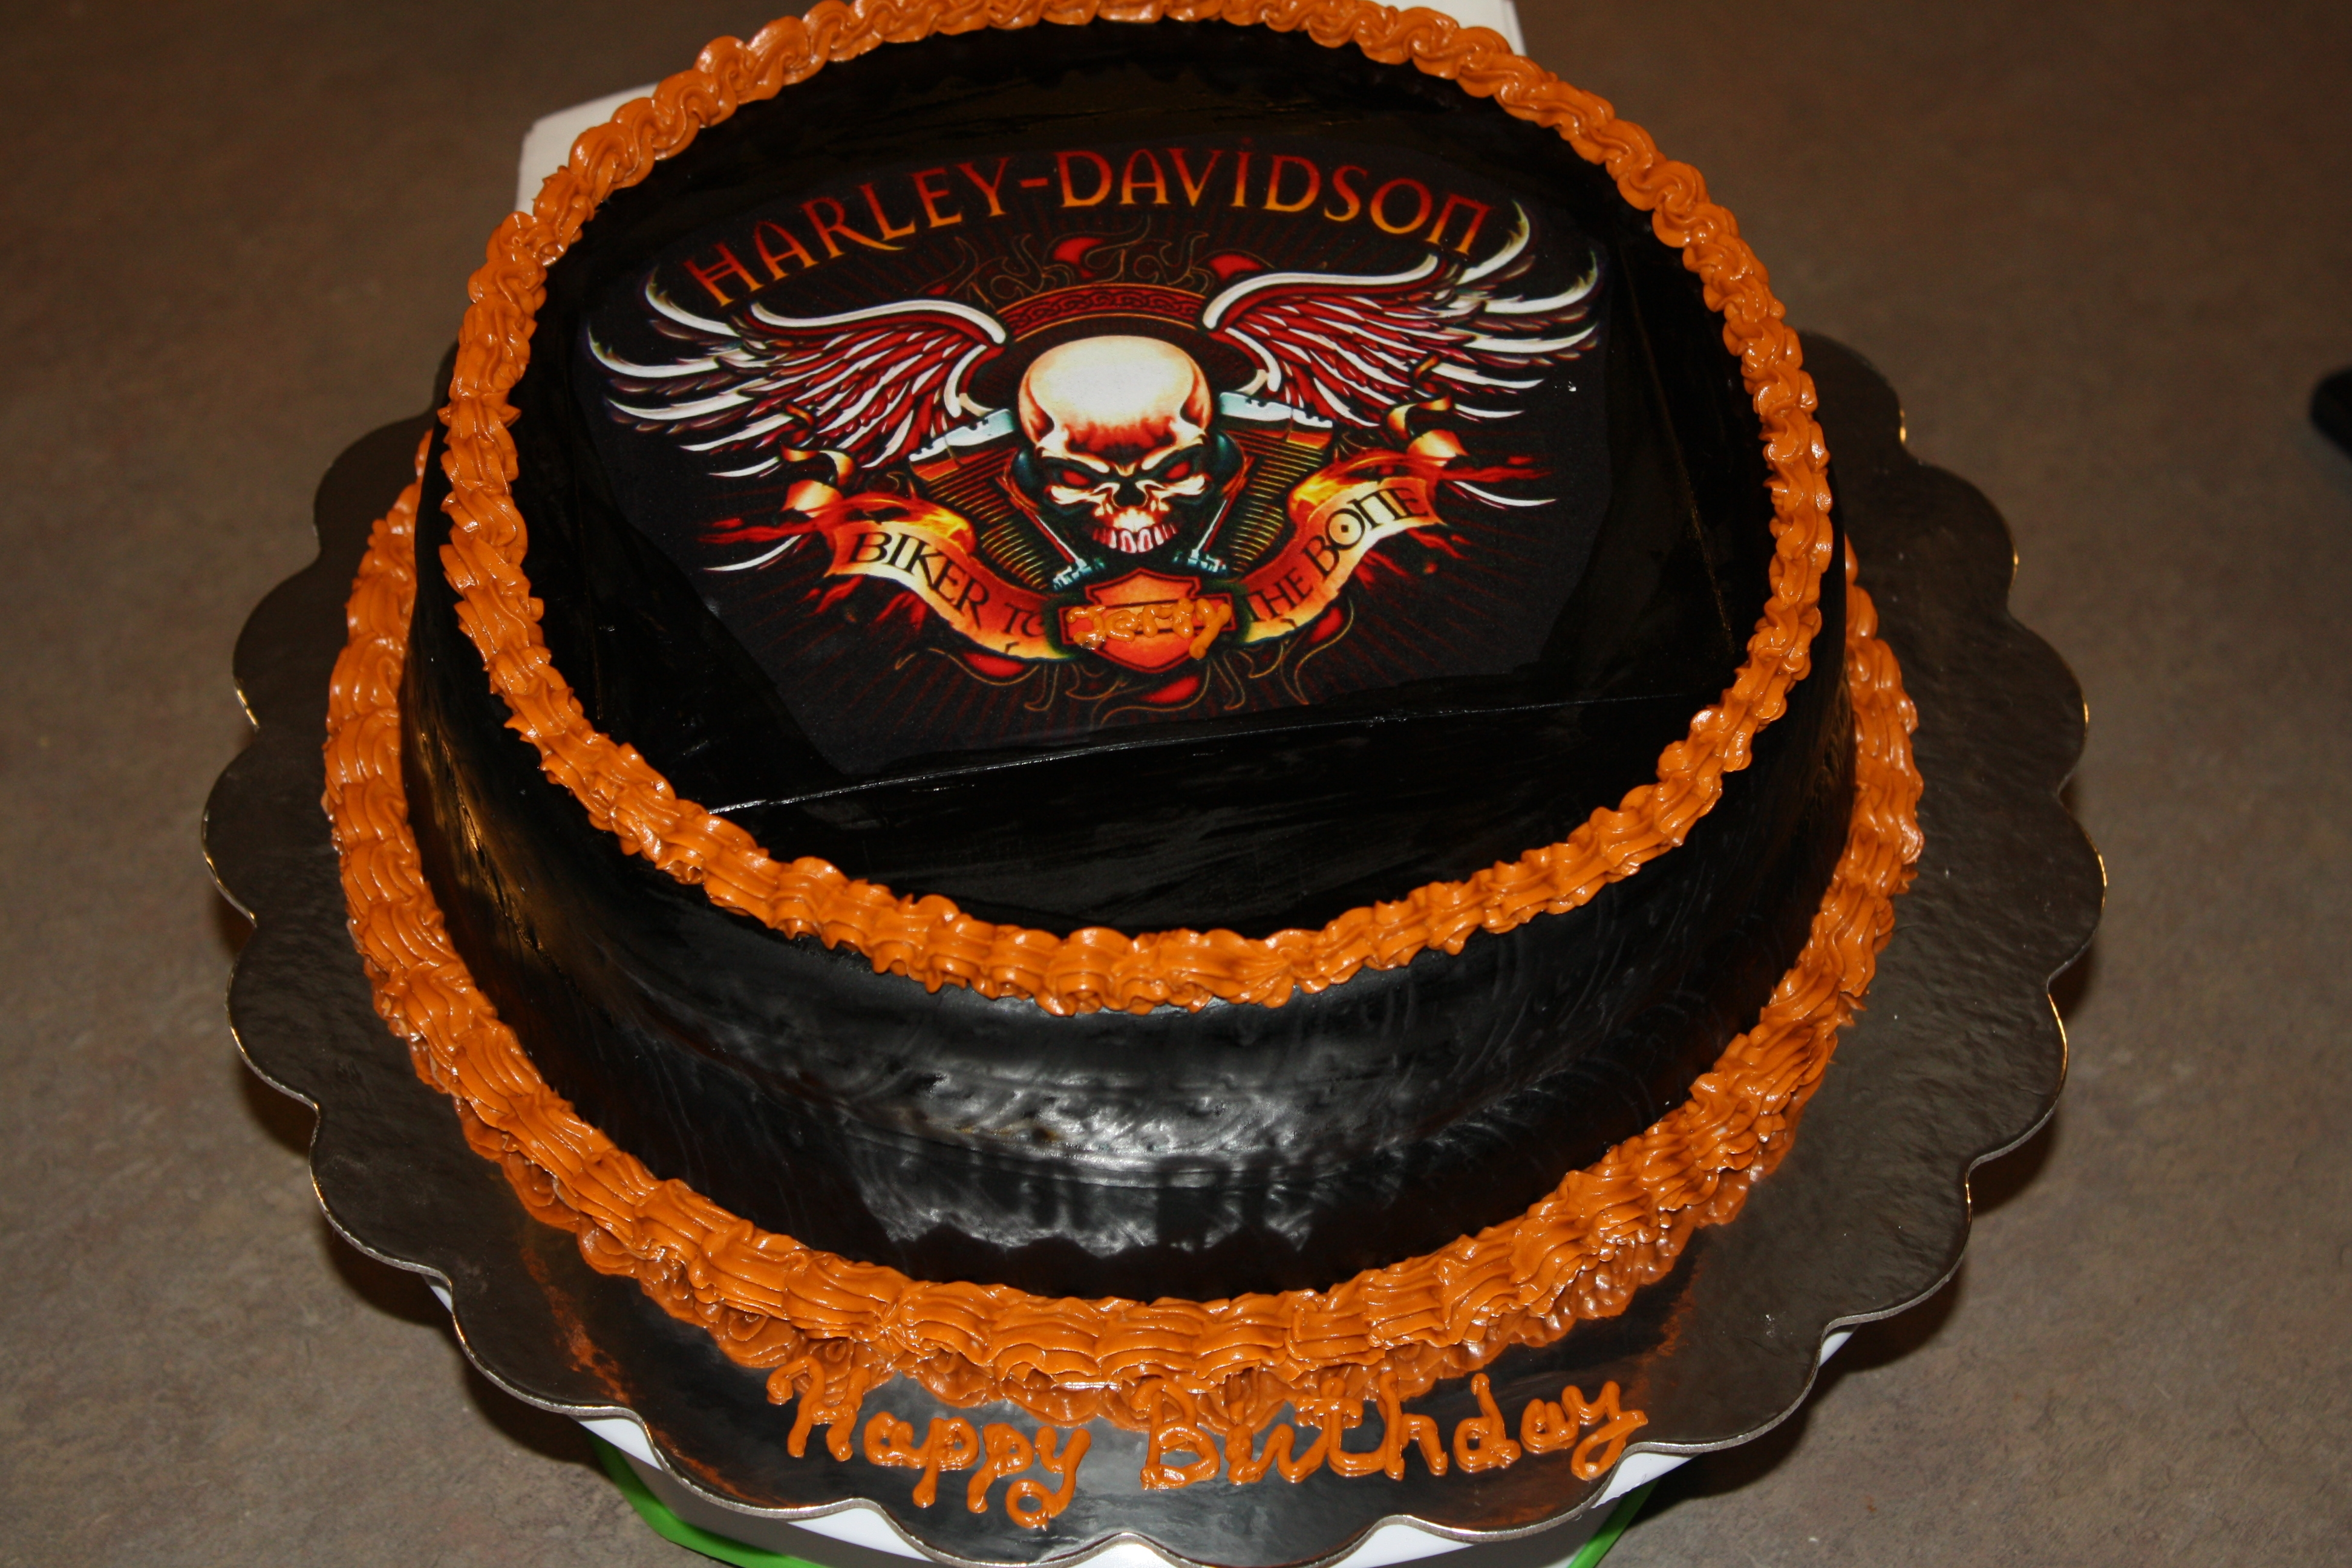 Anniversary Cake Images In Hd : Harley Davidson Birthday Cake For My Husband - CakeCentral.com